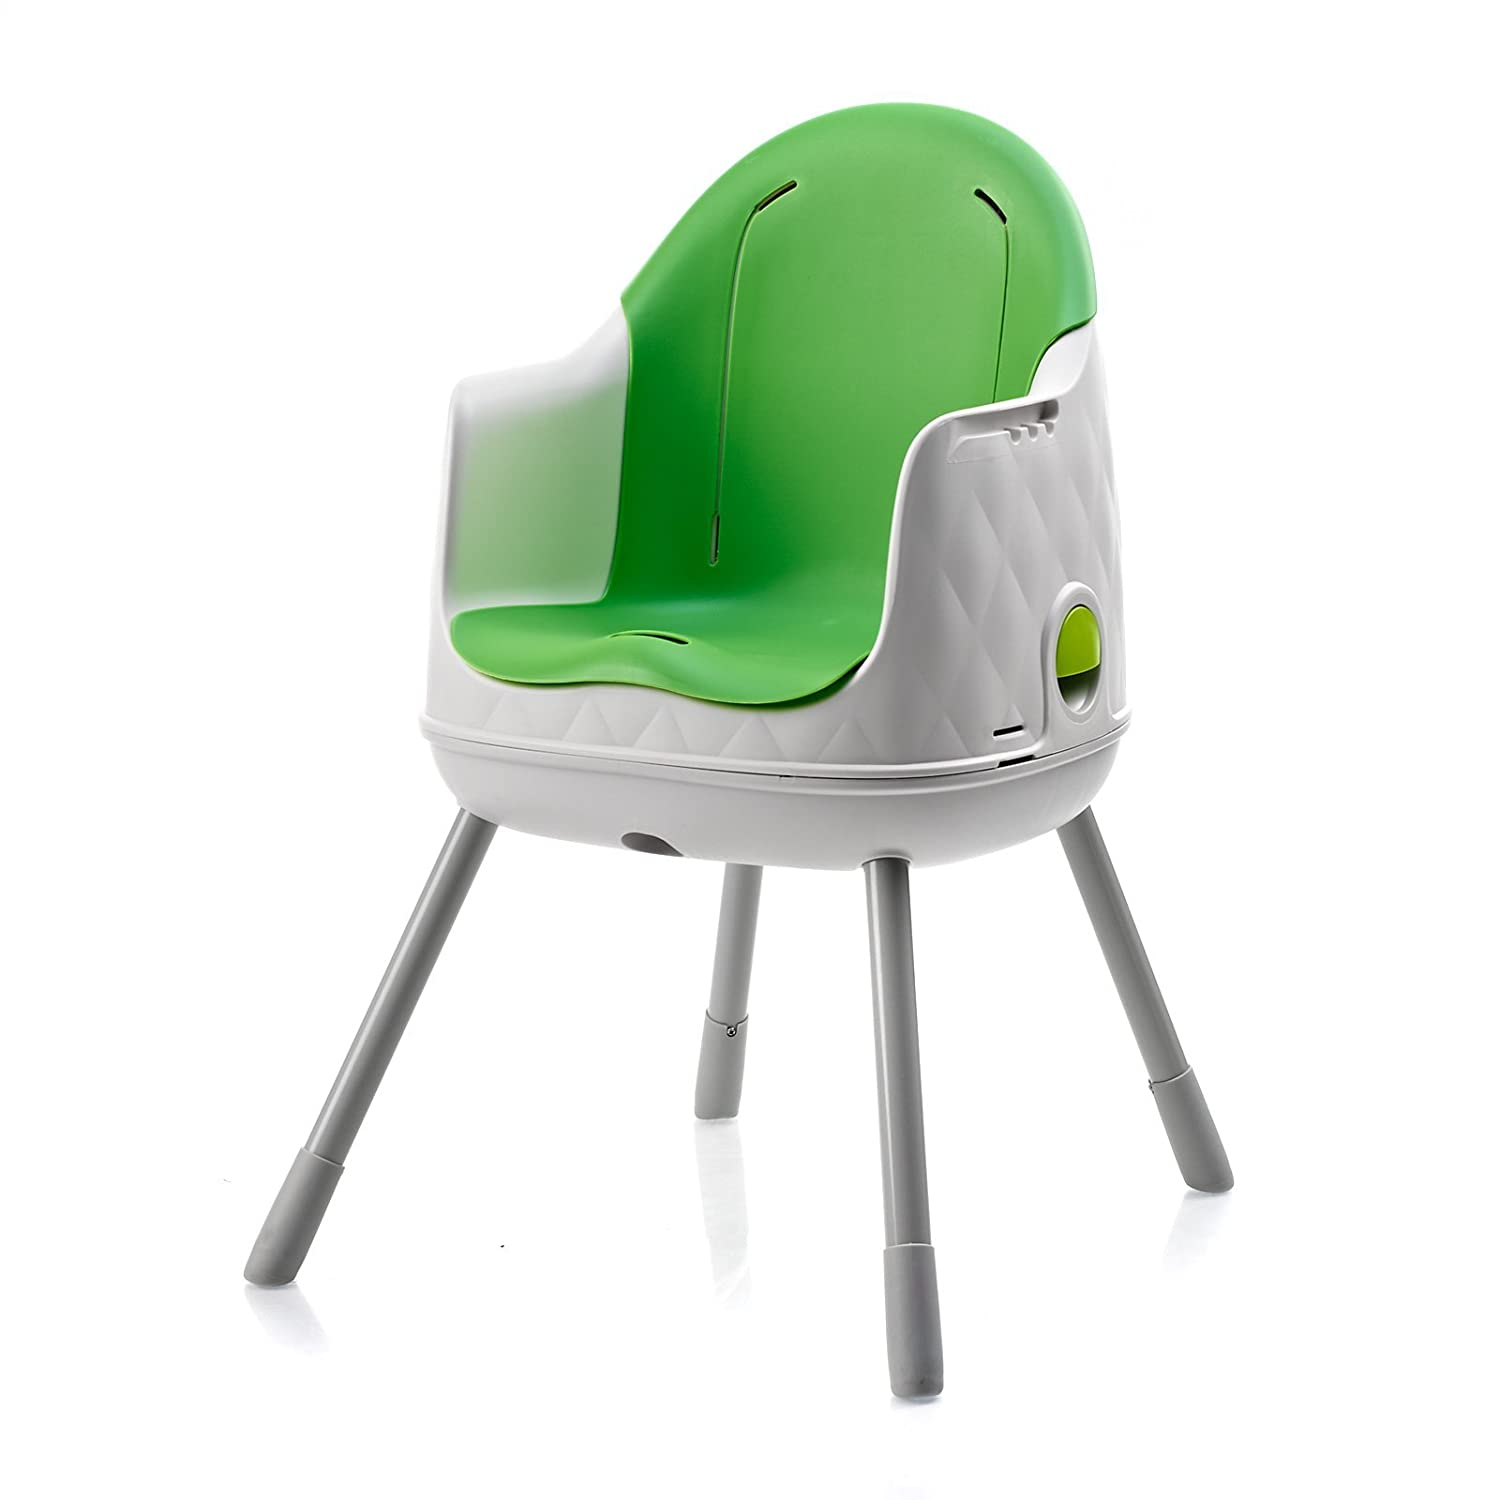 Groovy Keter Multi Dine Baby Child Infant Portable High Feeding Chair Booster Seat Green Pabps2019 Chair Design Images Pabps2019Com